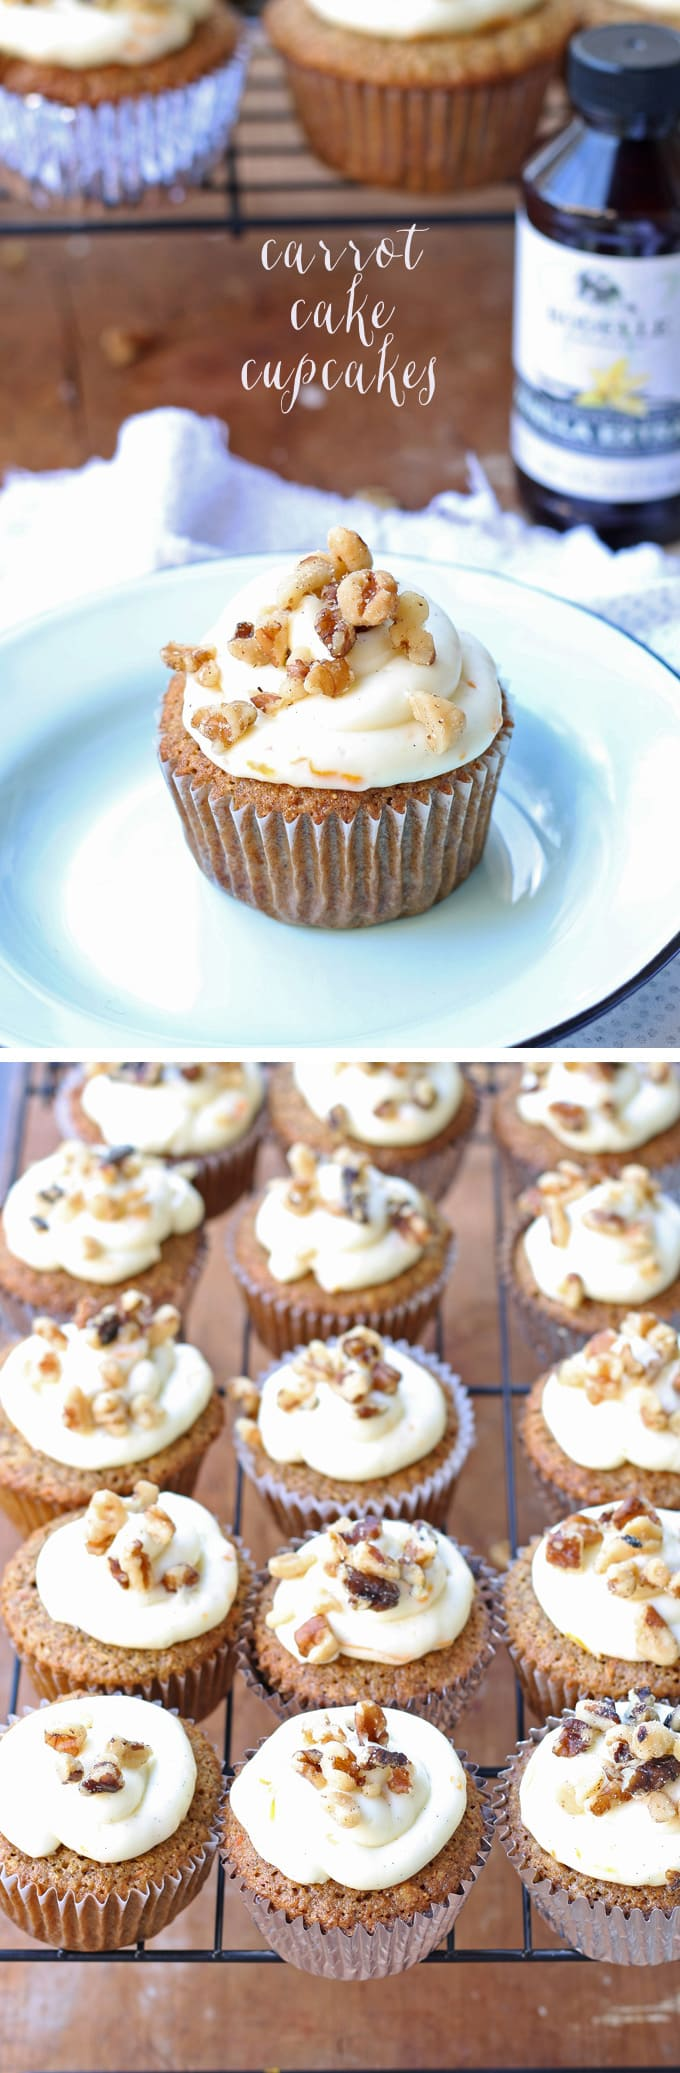 Carrot Cake Cupcakes - Honey and Birch